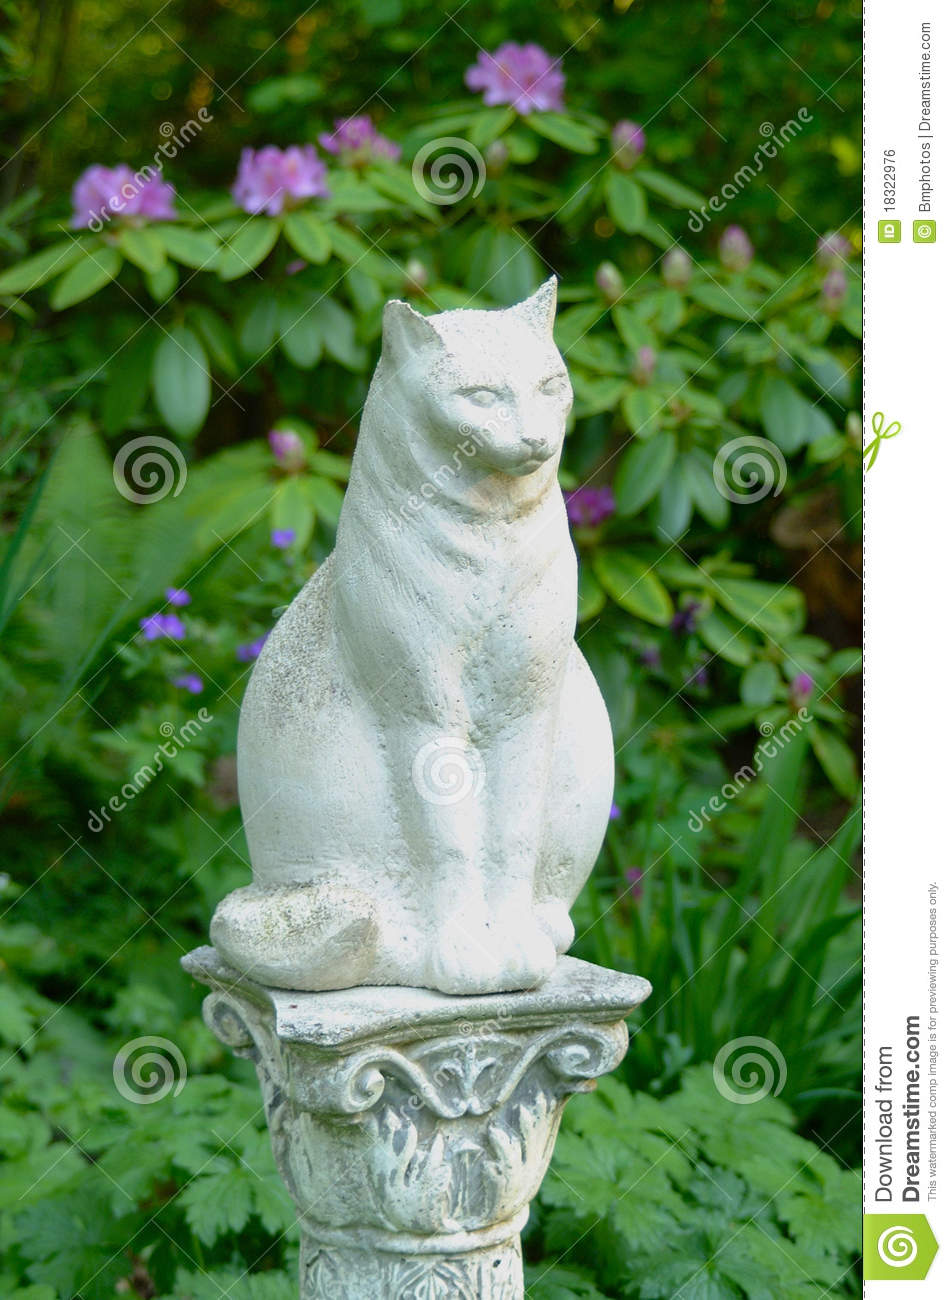 Statue Exterieur Jardin Statue En Pierre D'un Chat Photo Stock. Image Du Pourpré